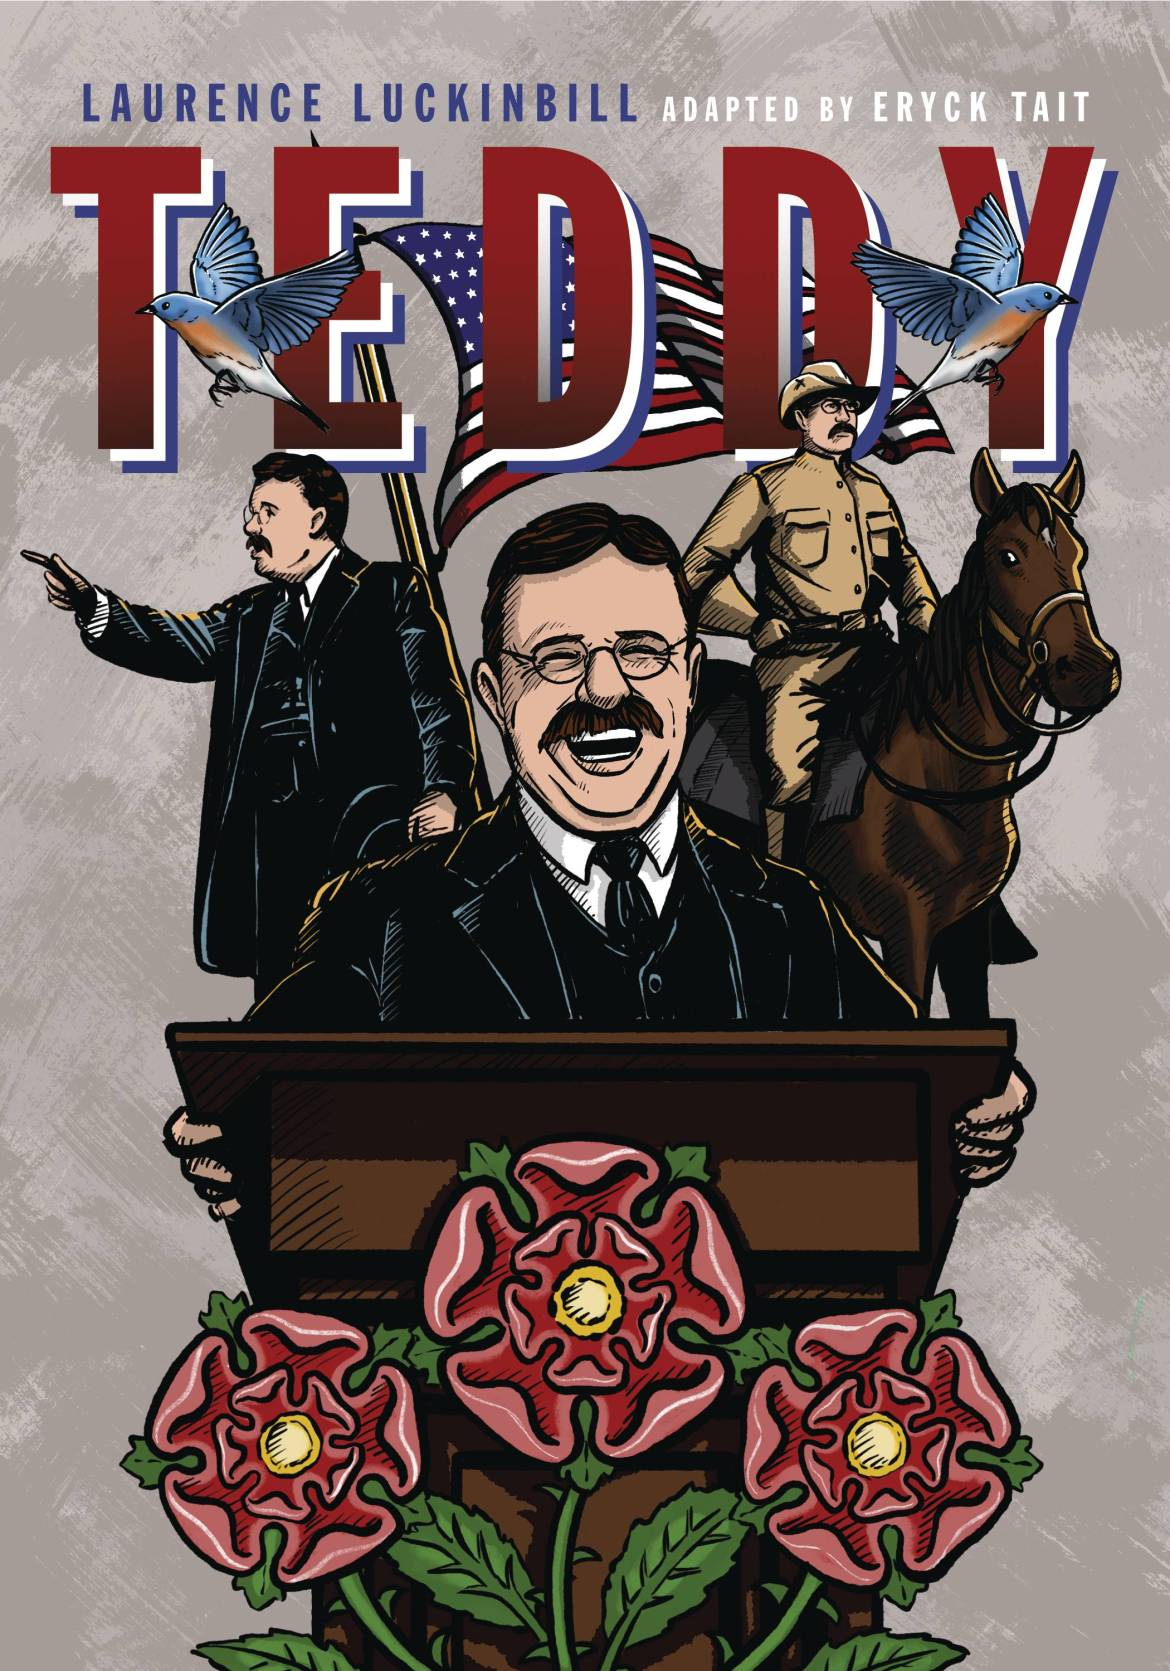 STL174533 ComicList: New Comic Book Releases List for 02/03/2021 (1 Week Out)